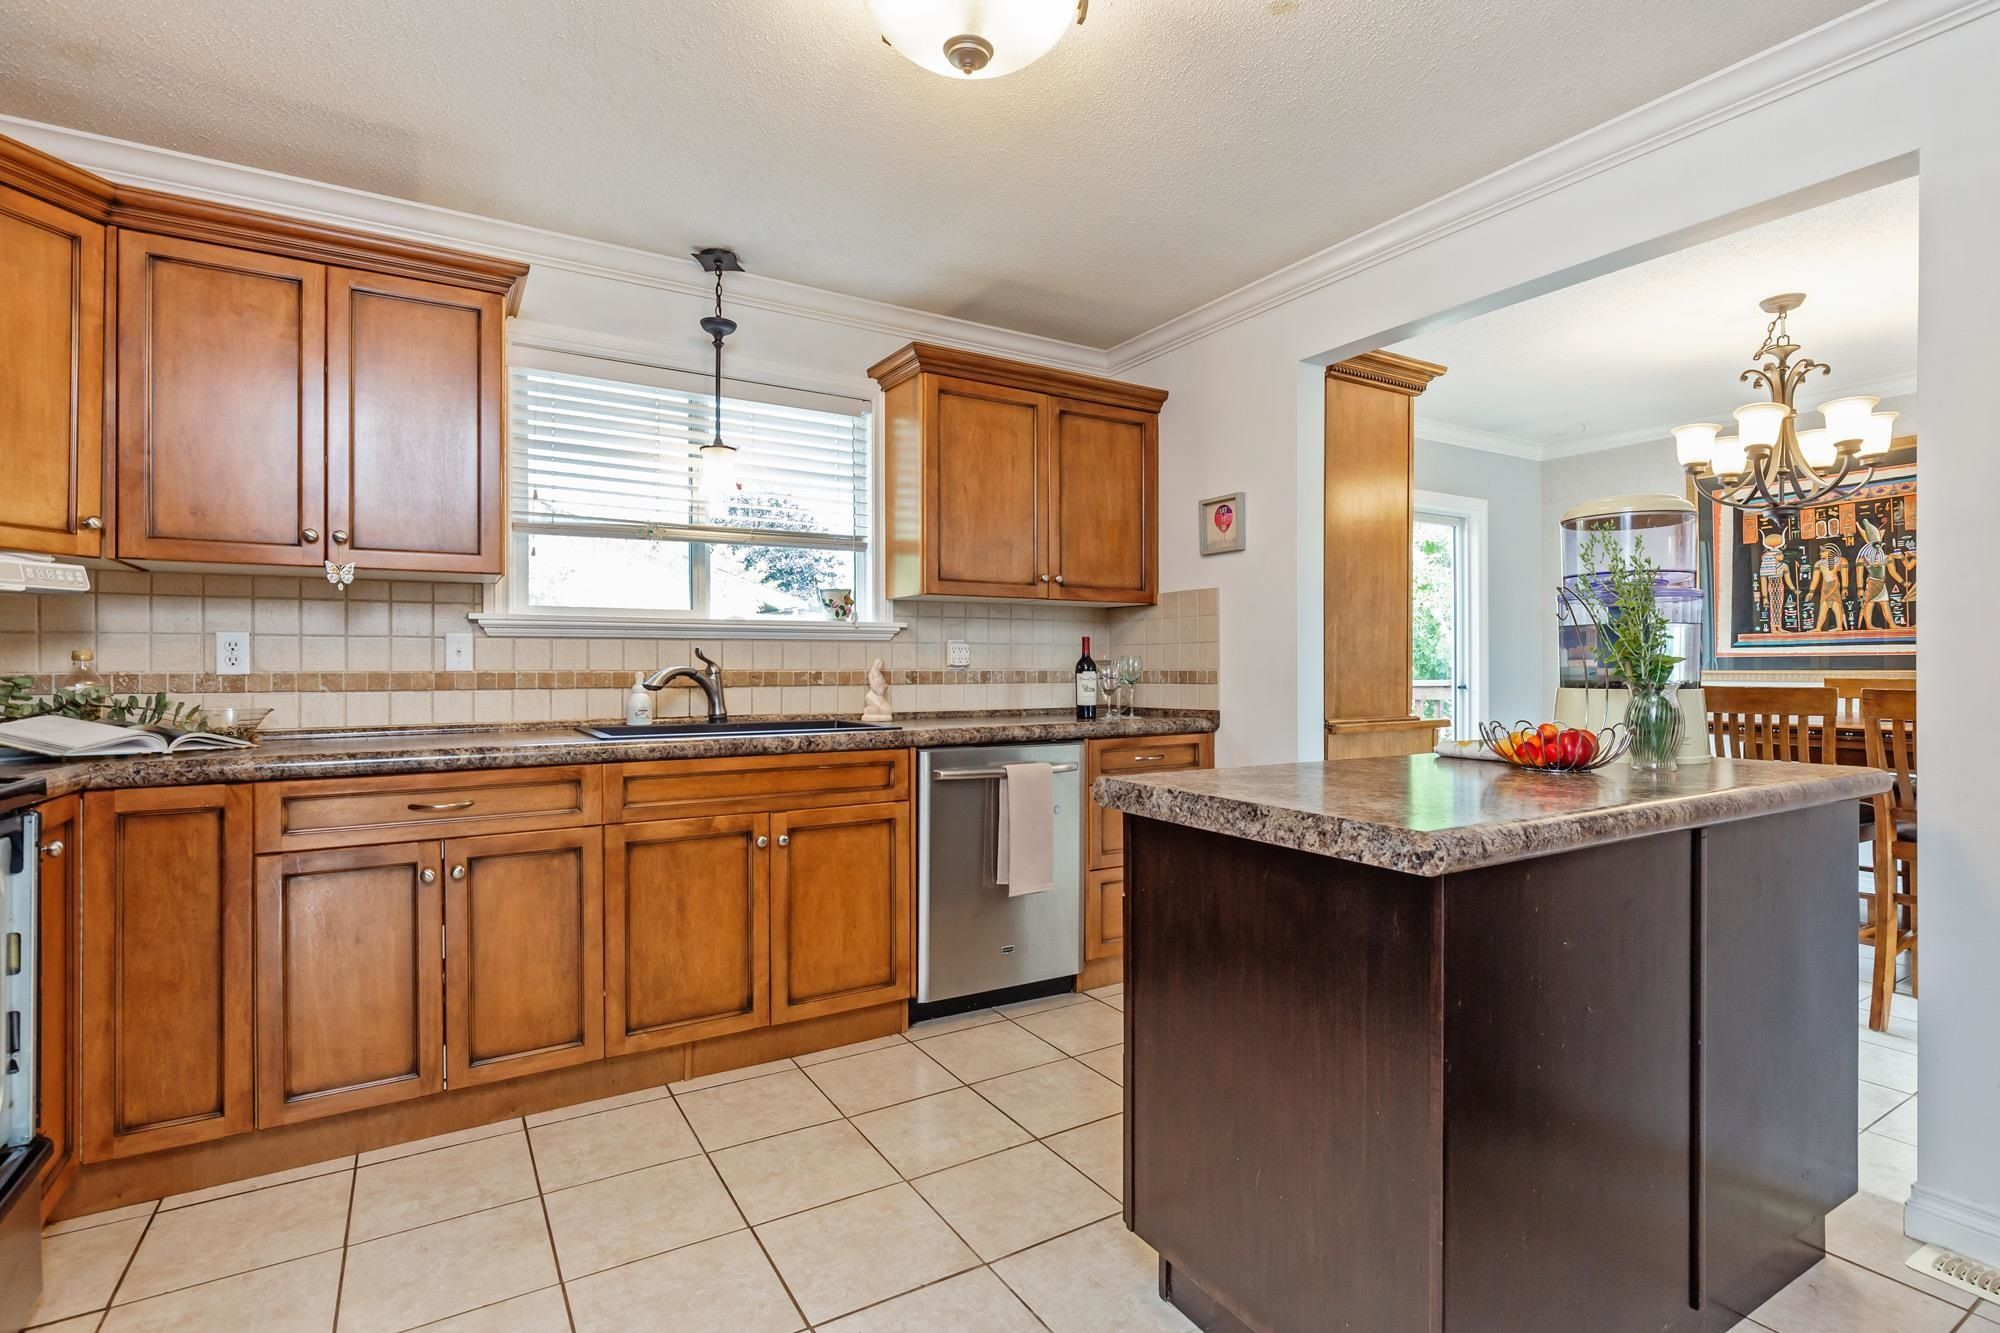 Photo 13: Photos: 32319 ATWATER Crescent in Abbotsford: Abbotsford West House for sale : MLS®# R2609136